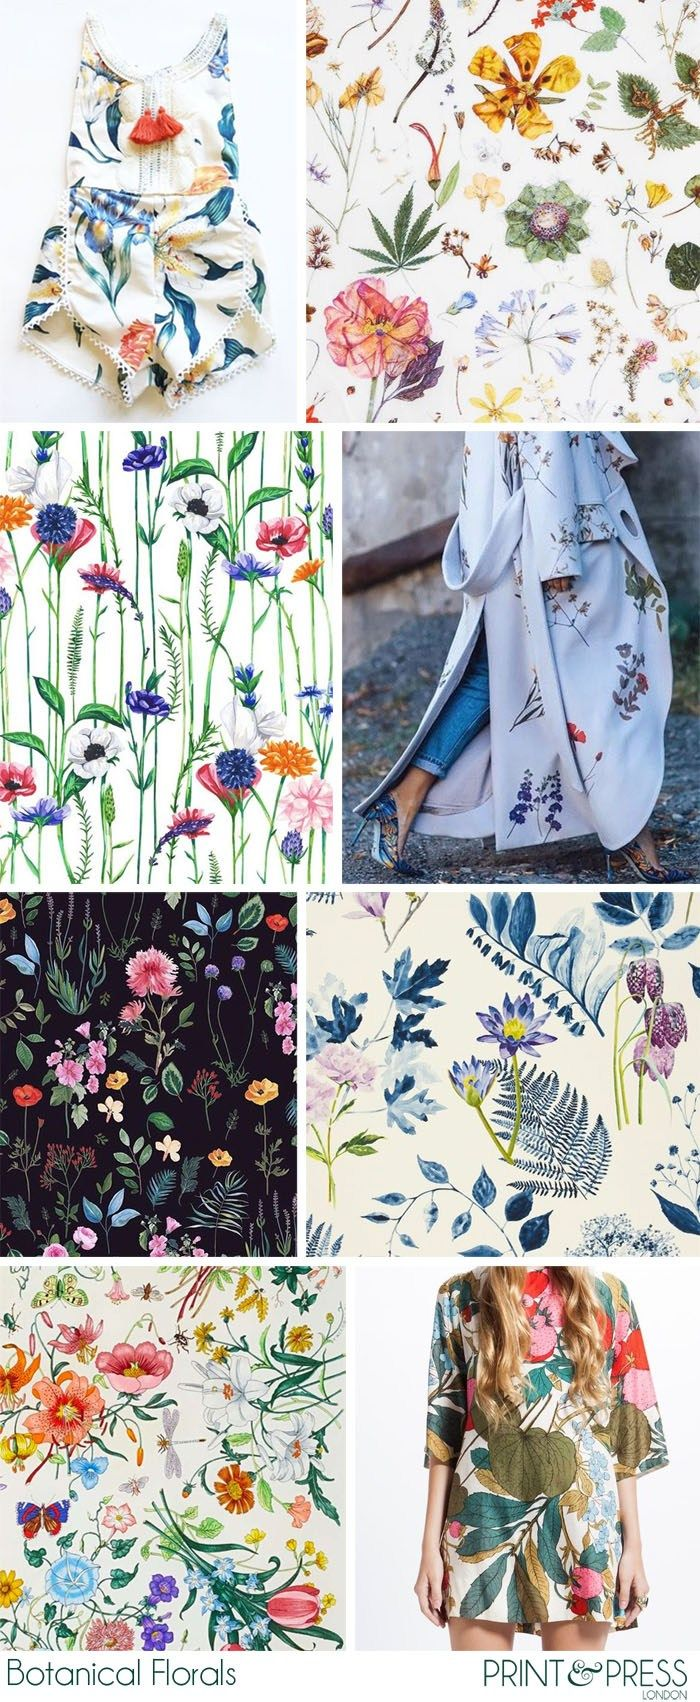 Botanical floral print design inspiration, curated by Print & Press, London